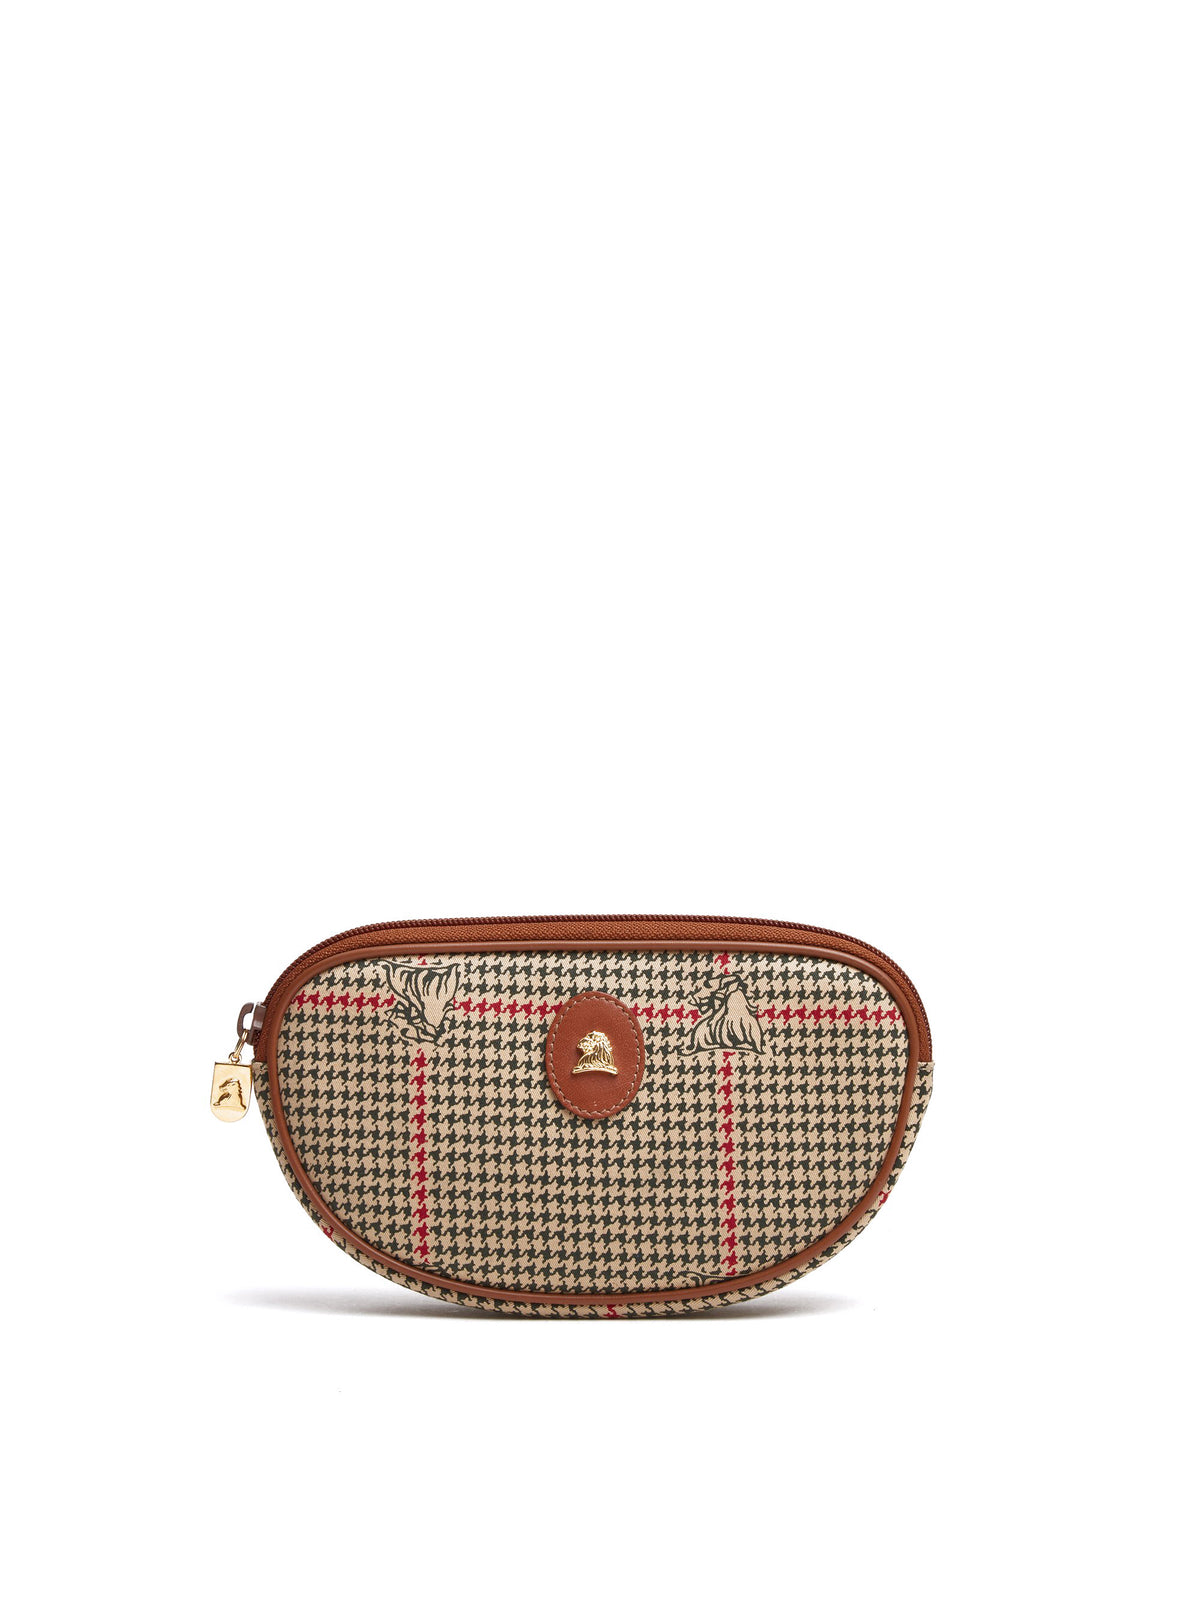 Mark Cross Vintage Houndstooth Cosmetic Bag Cognac Front